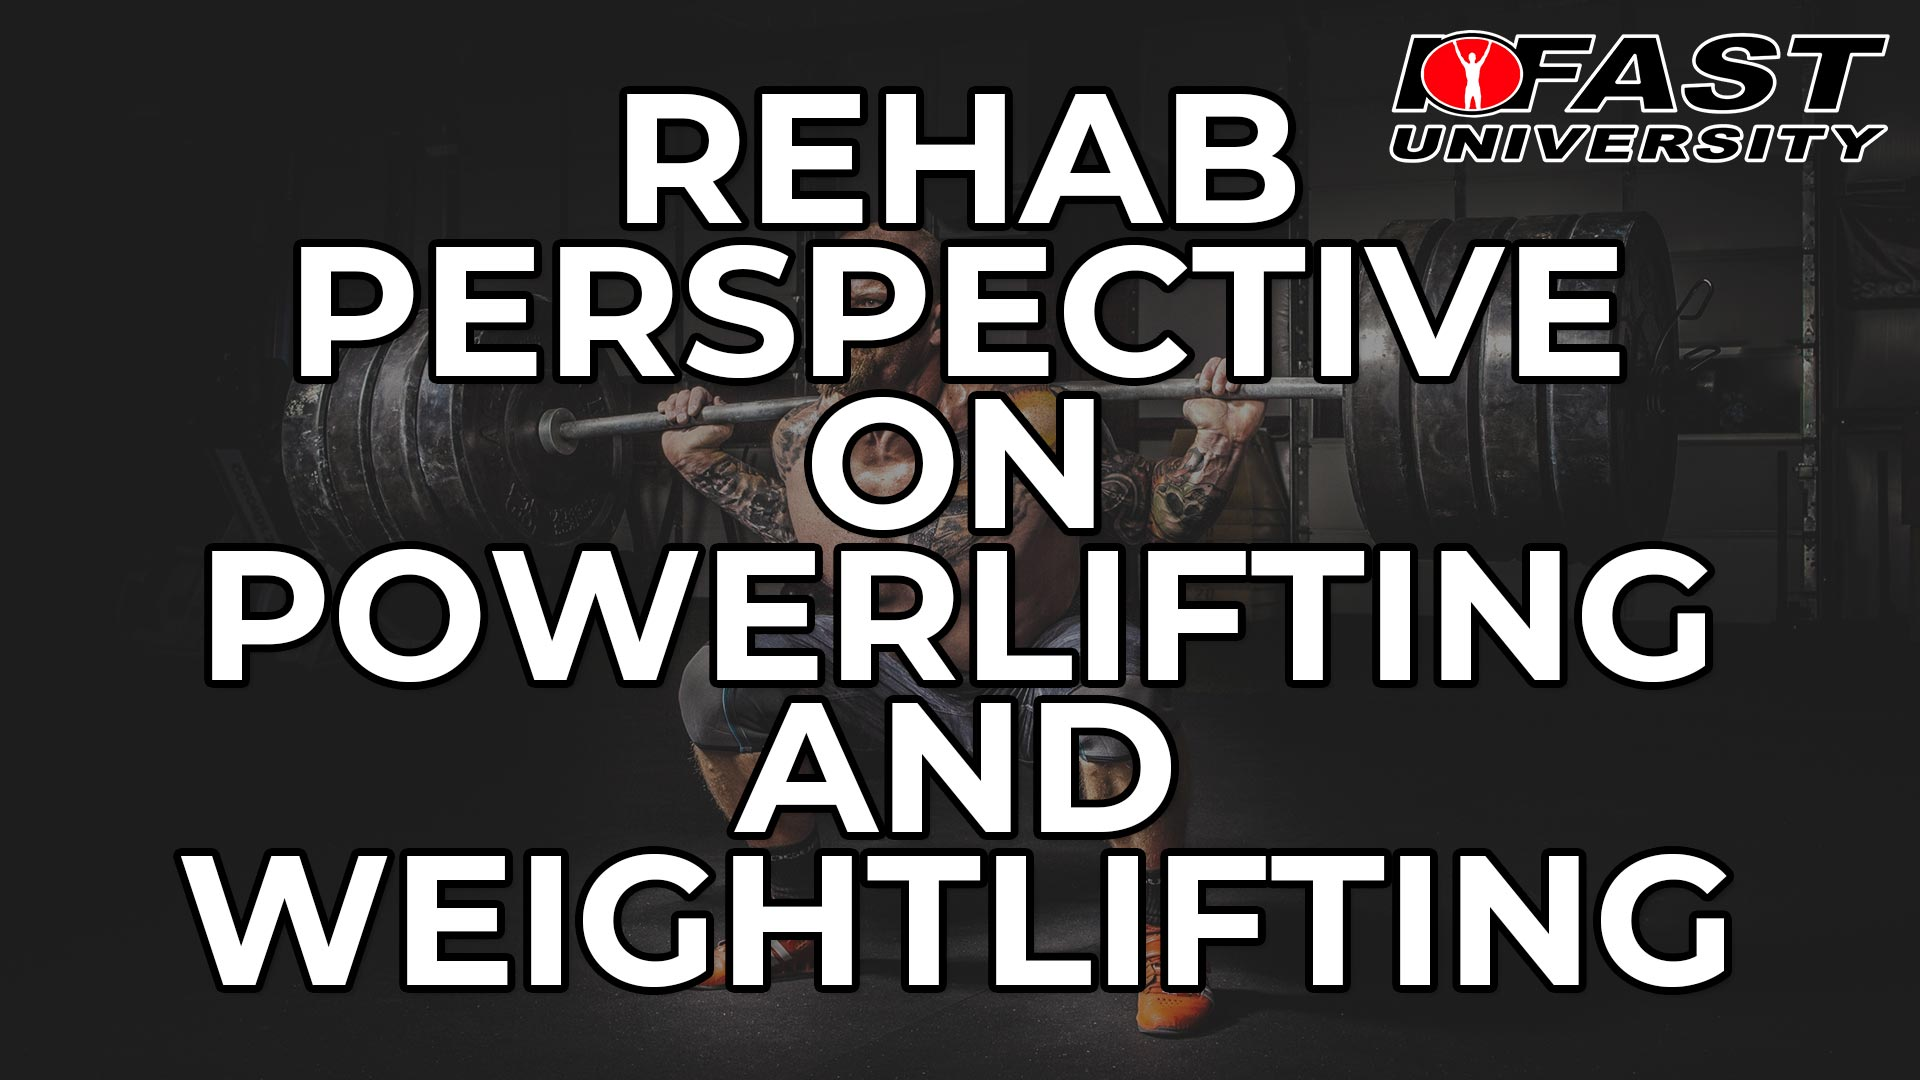 A Rehab Perspective on Powerlifting and Weightlifting - June 2019 Q&A with Bill Hartman